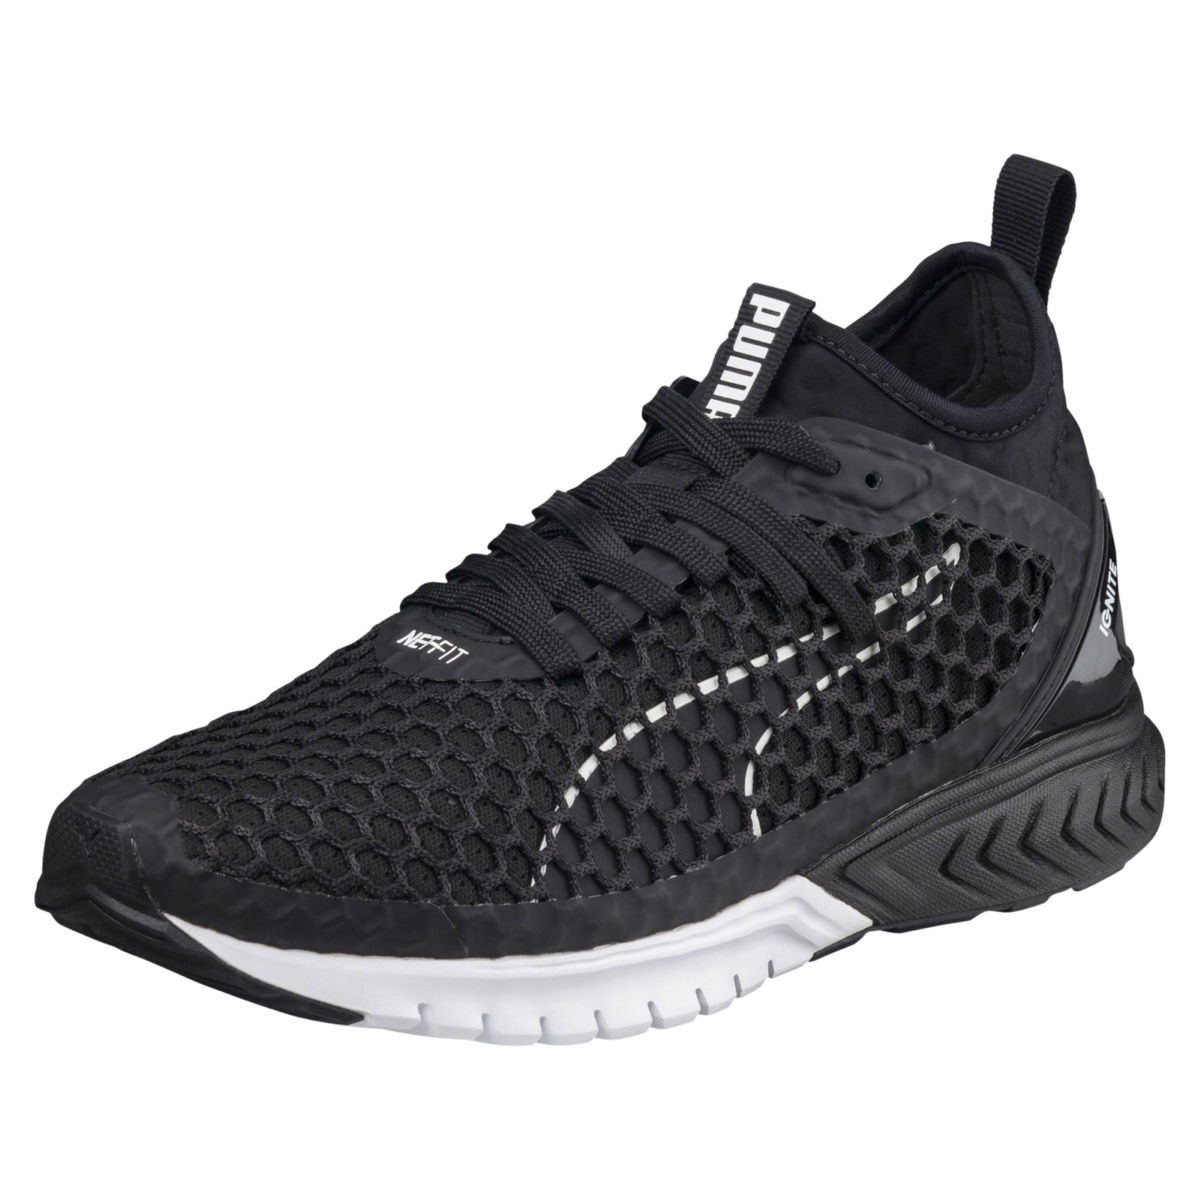 Chaussures Femme Puma Ignite Dual Netfit - UK 6.5 black-white